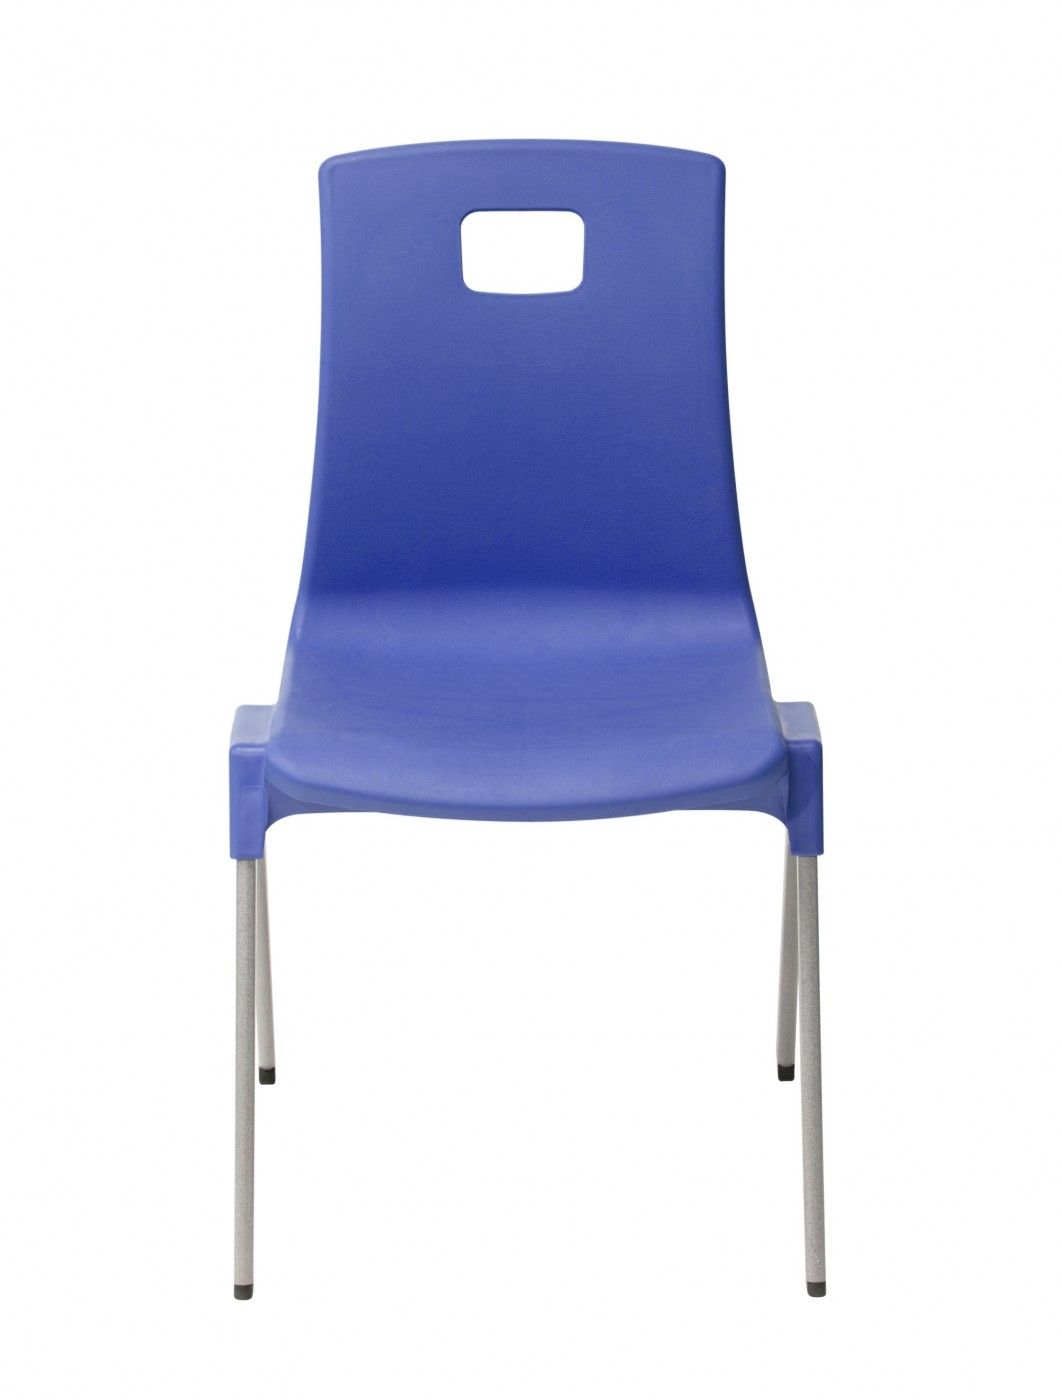 Metalliform ST Chairs - Age 4-6 Years Polypropylene Classroom Chairs ST2